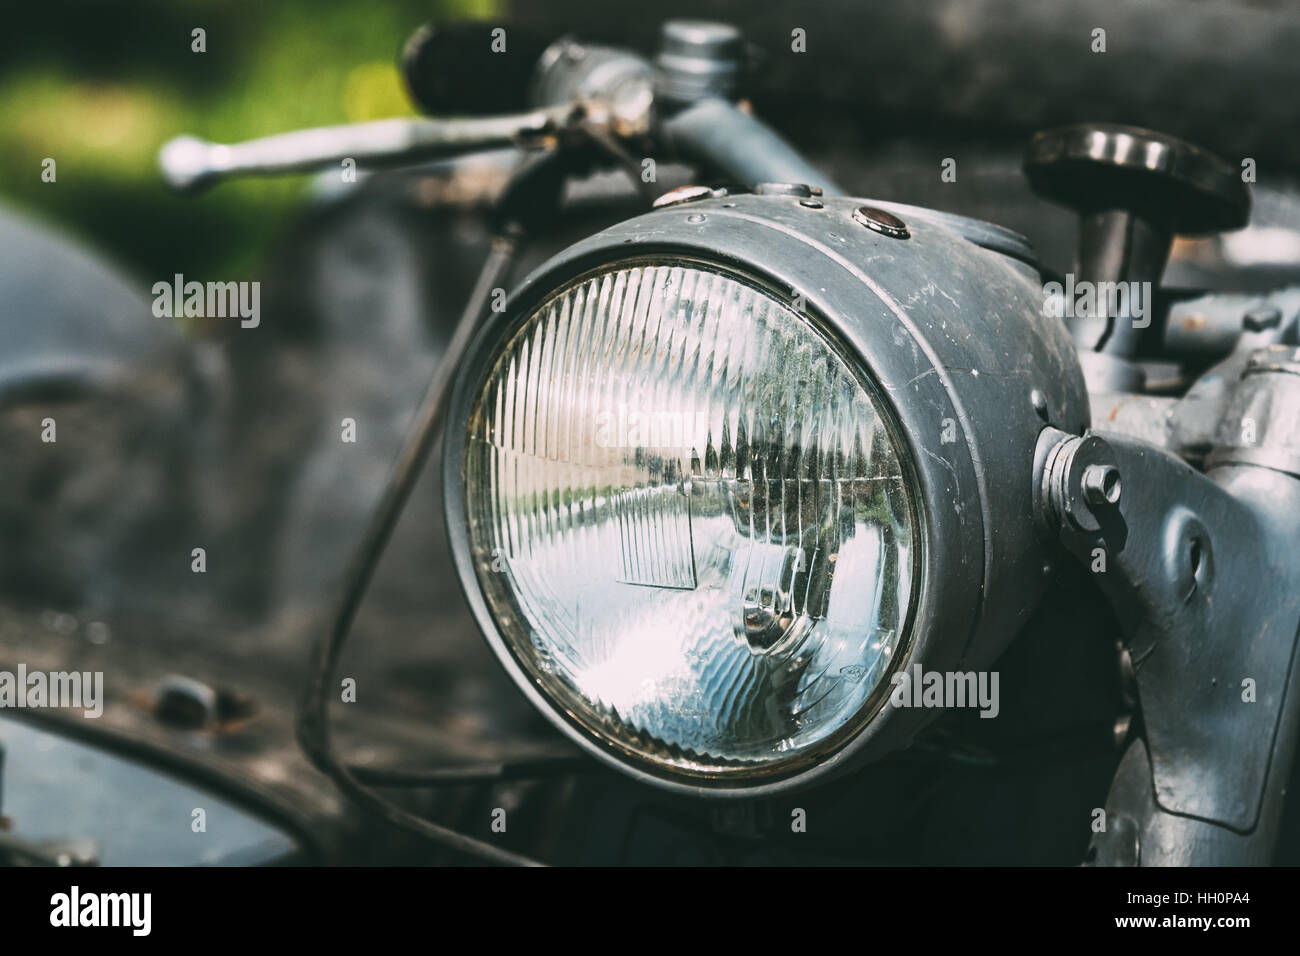 Close View Of Headlight Of The Old Rarity Gray Tricar Or Three-Wheeled Motorbike With A Sidecar. - Stock Image